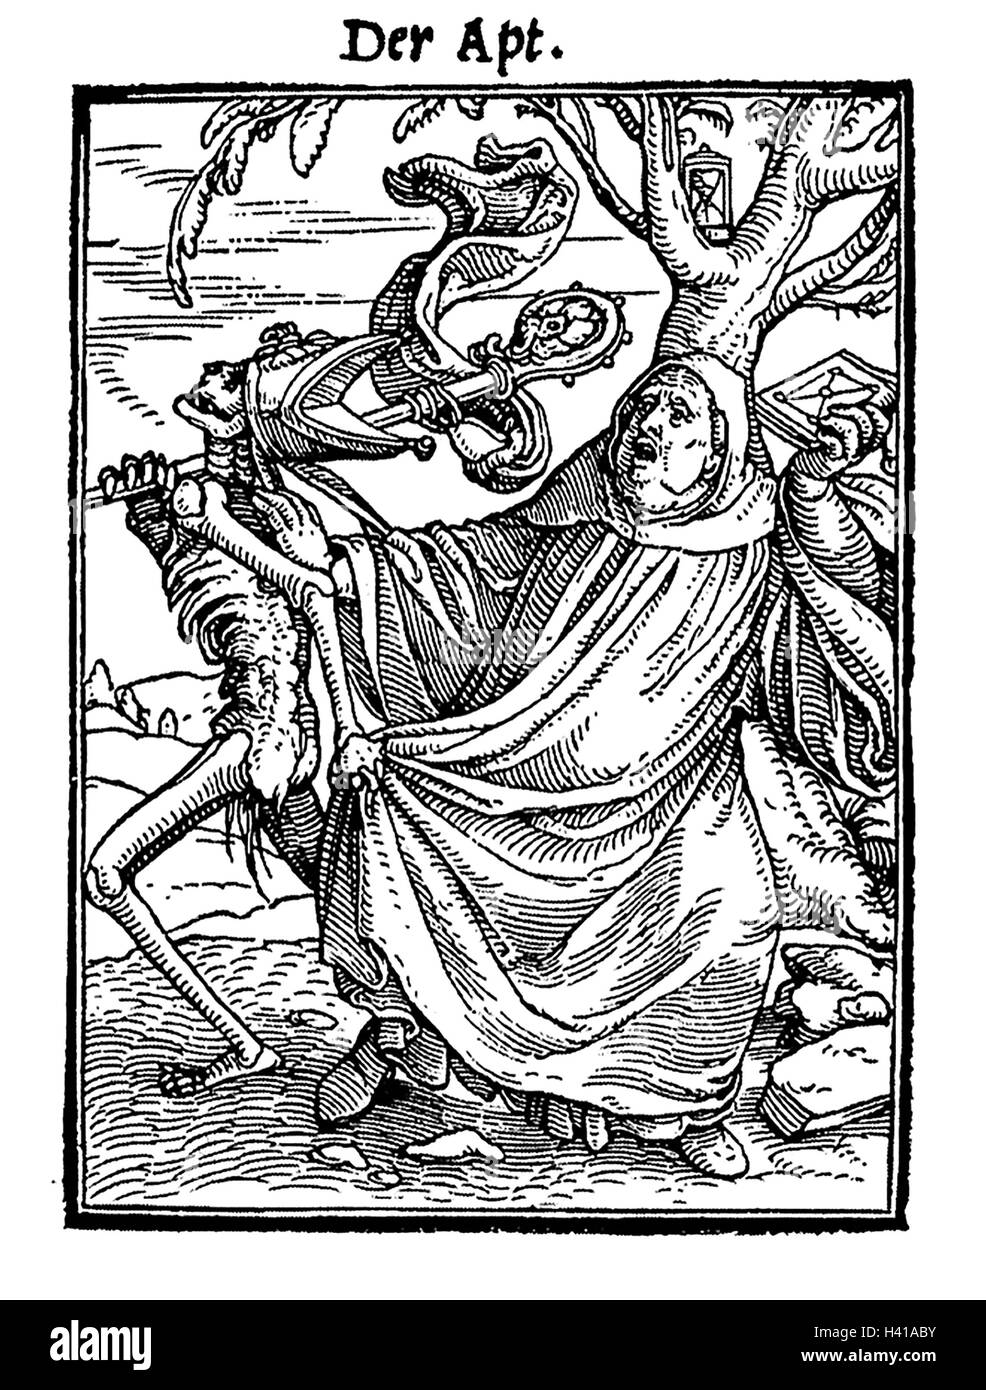 DANCE OF DEATH woodcut by Hans Holbein 1549 - the Abbot - Stock Image